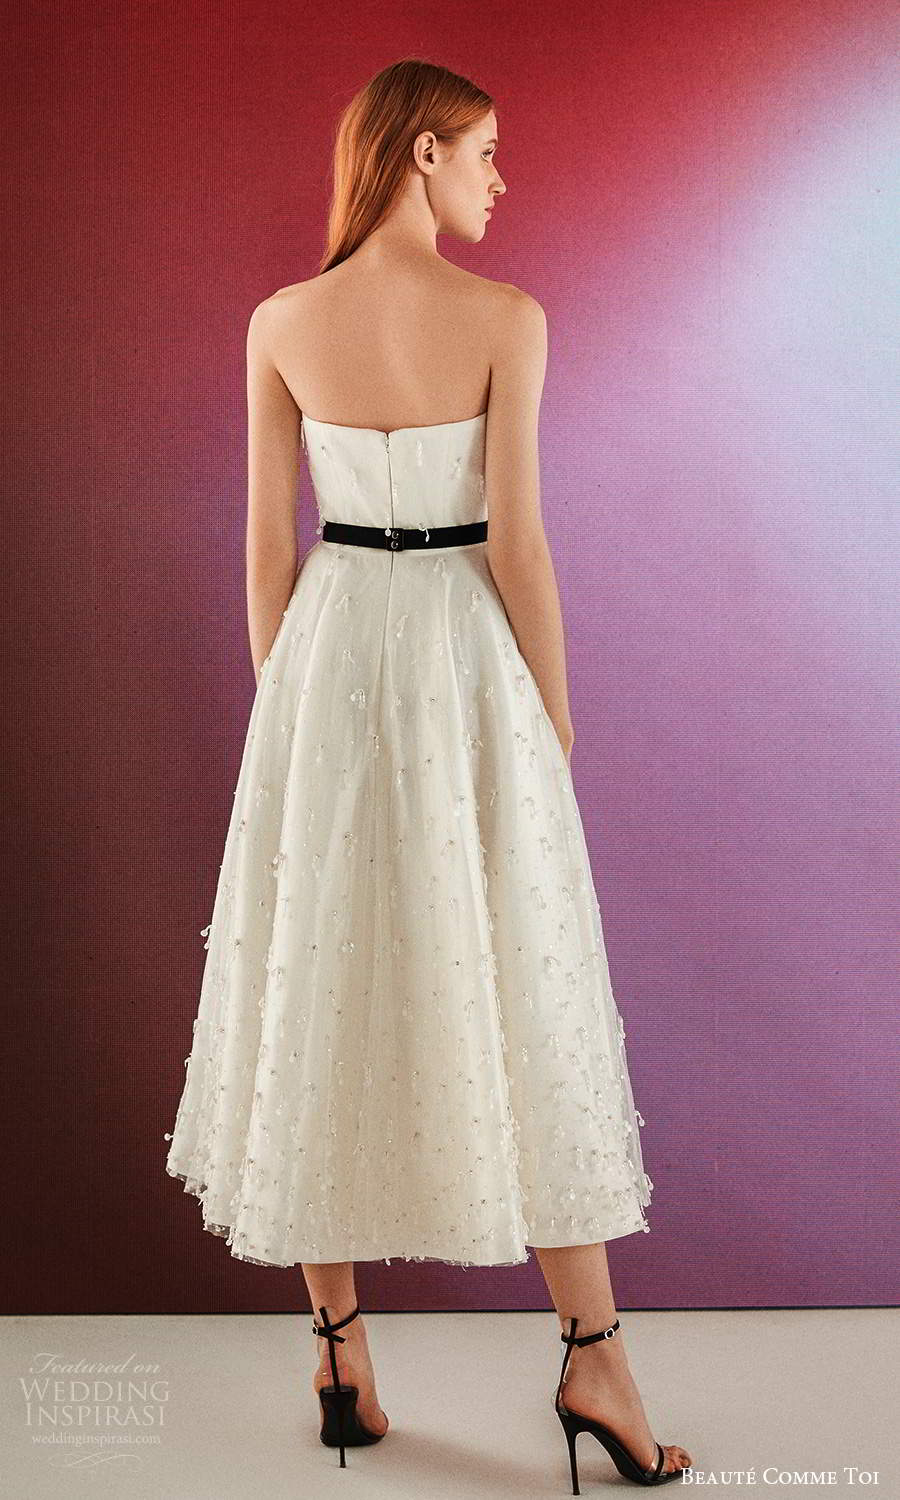 beaute comme toi fall 2021 bridal strapless straight across neckline embellished tea length a line wedding dress (8) bv